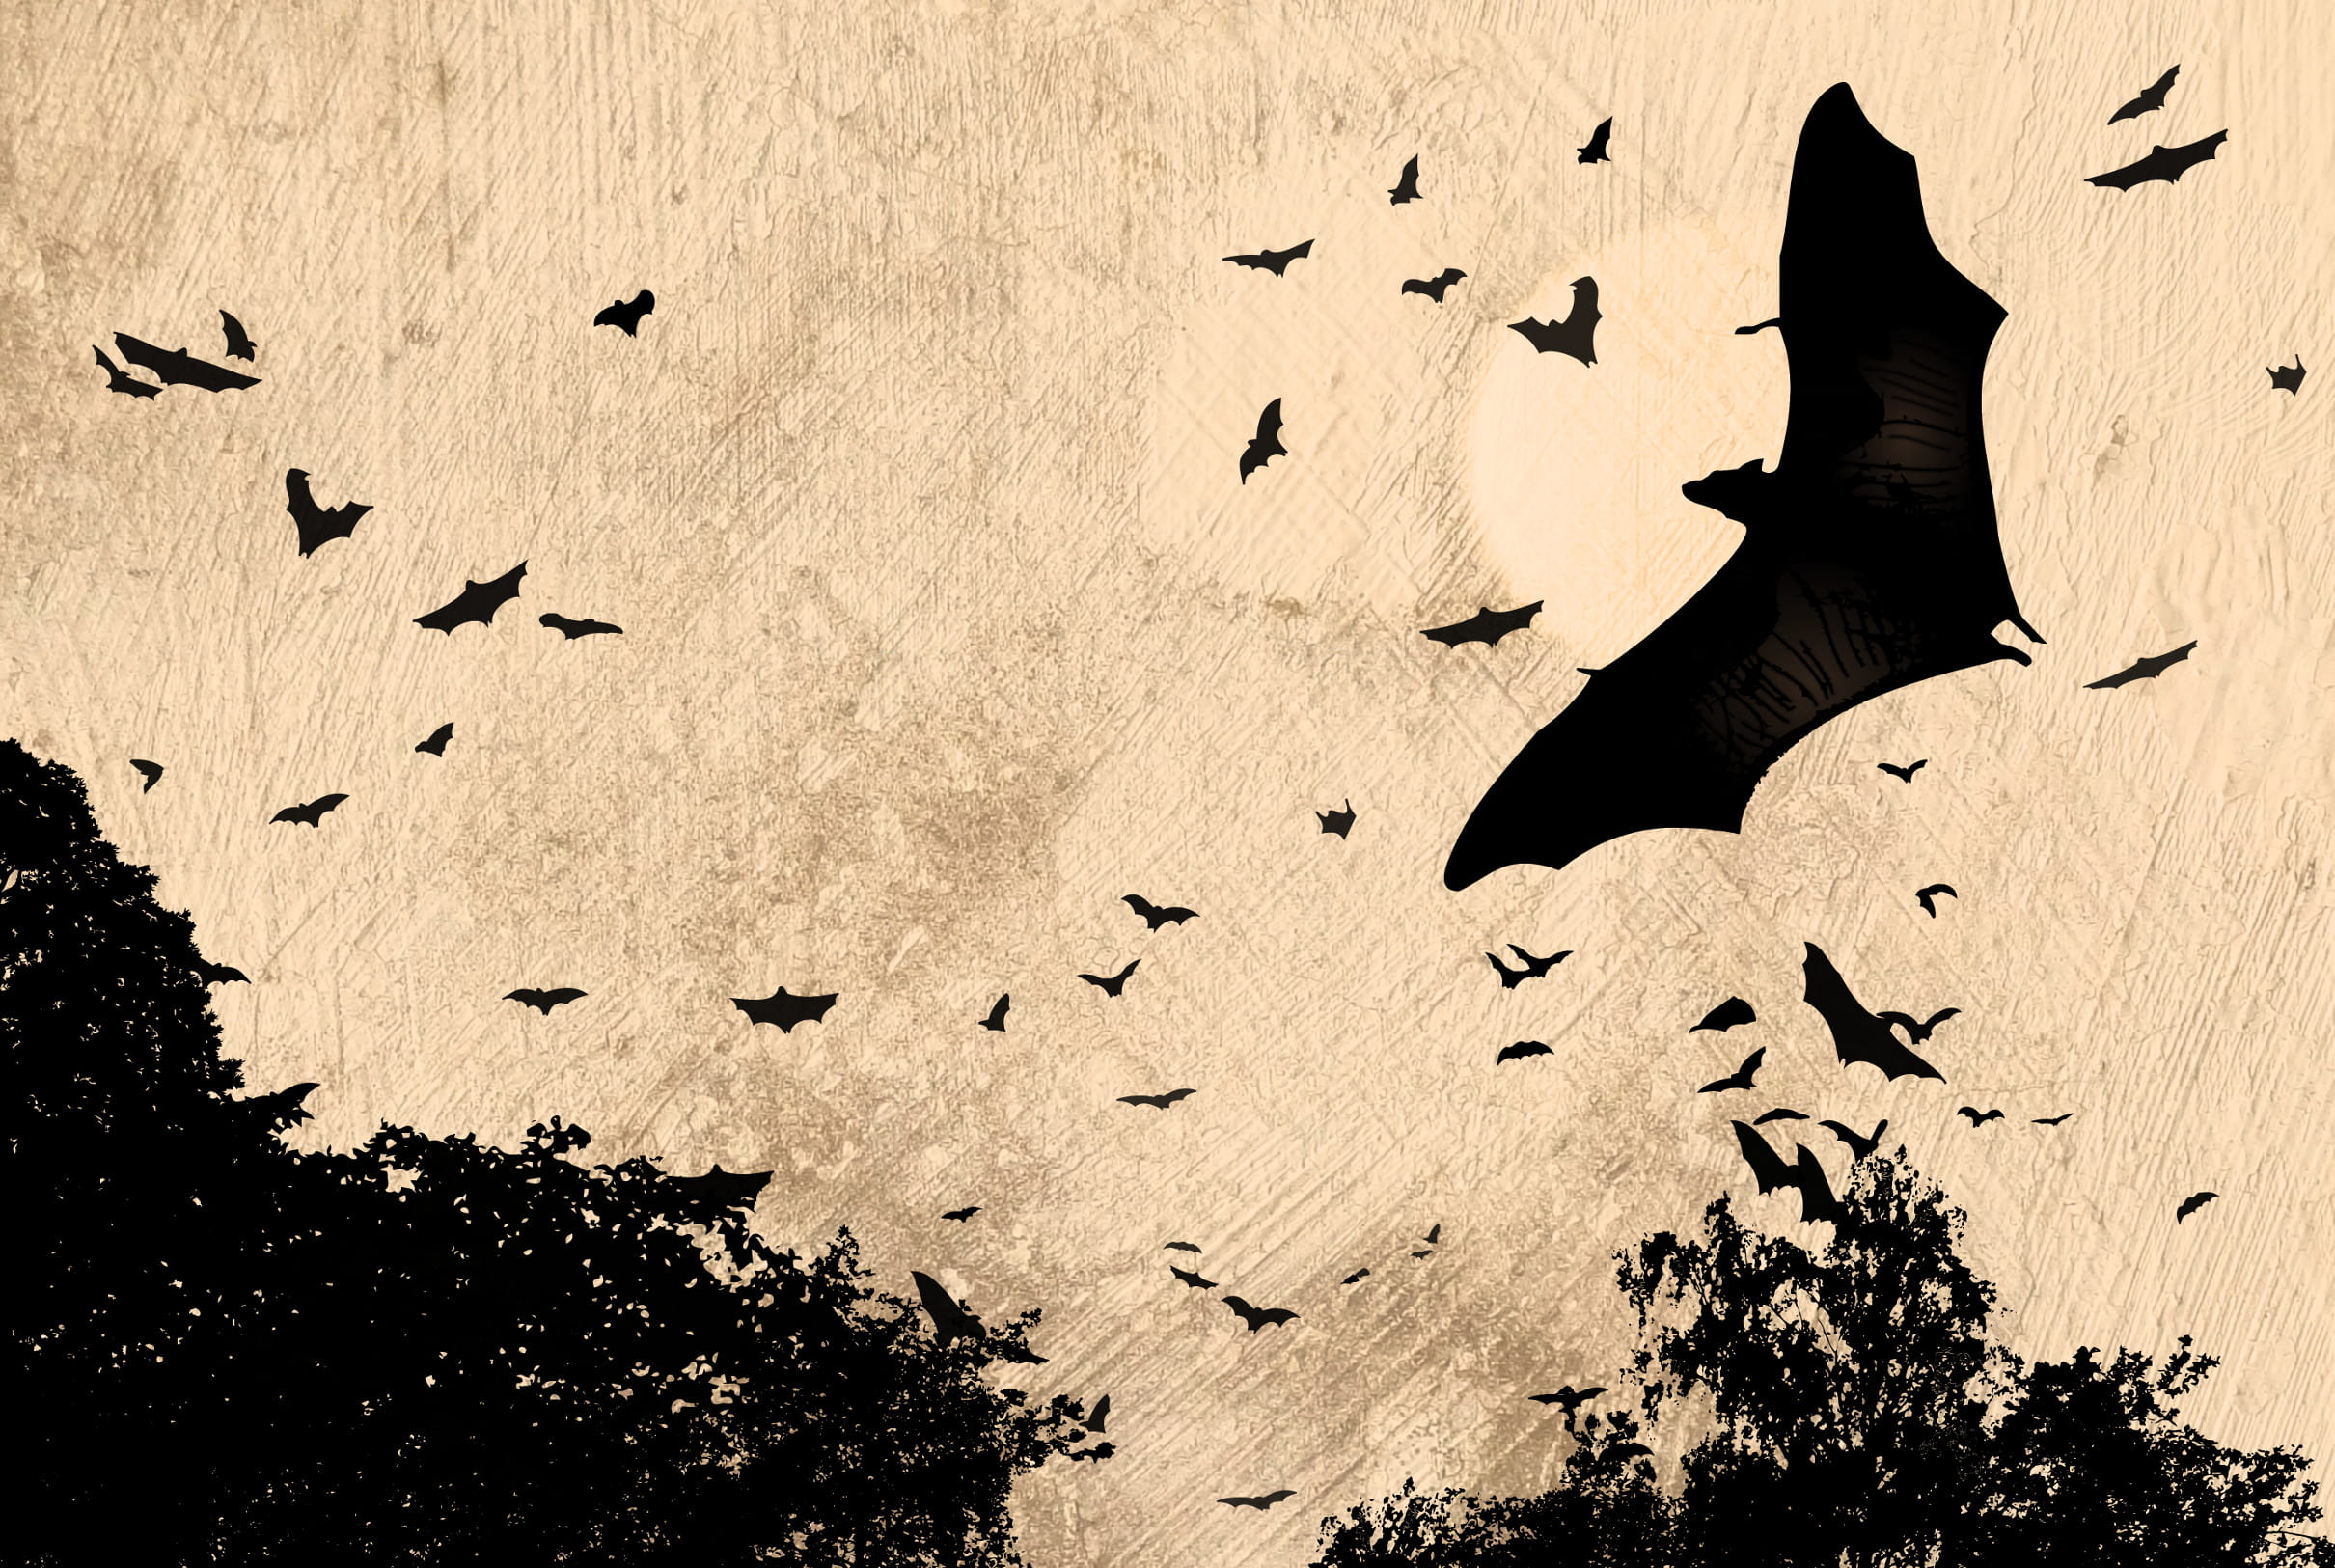 Illustration - bats flying